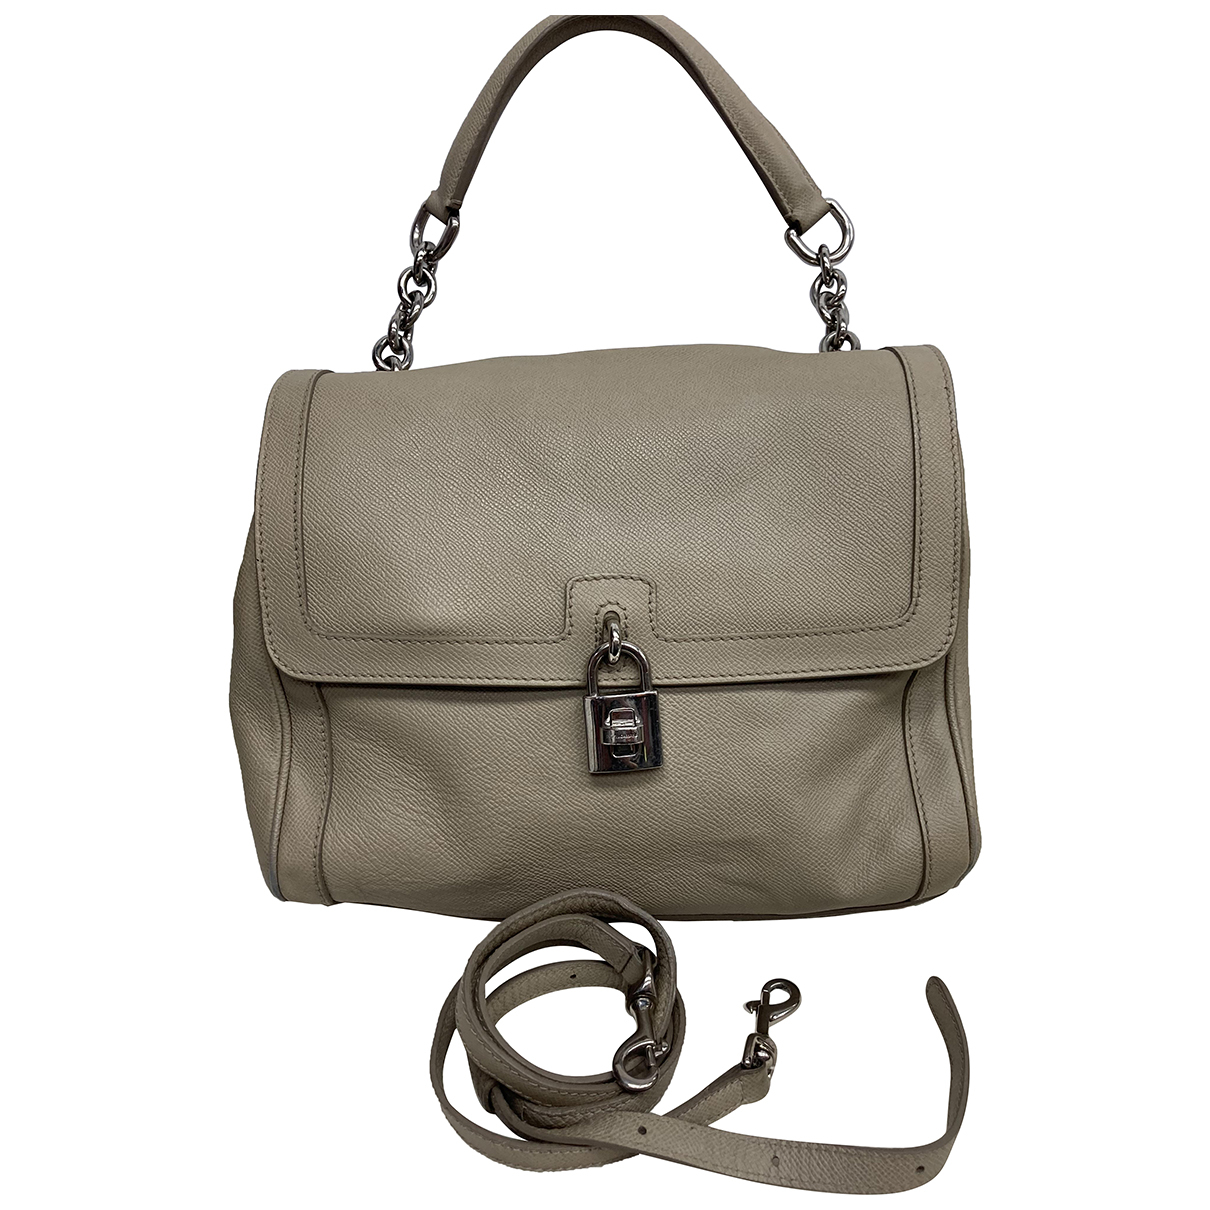 Dolce & Gabbana \N Beige Leather handbag for Women \N